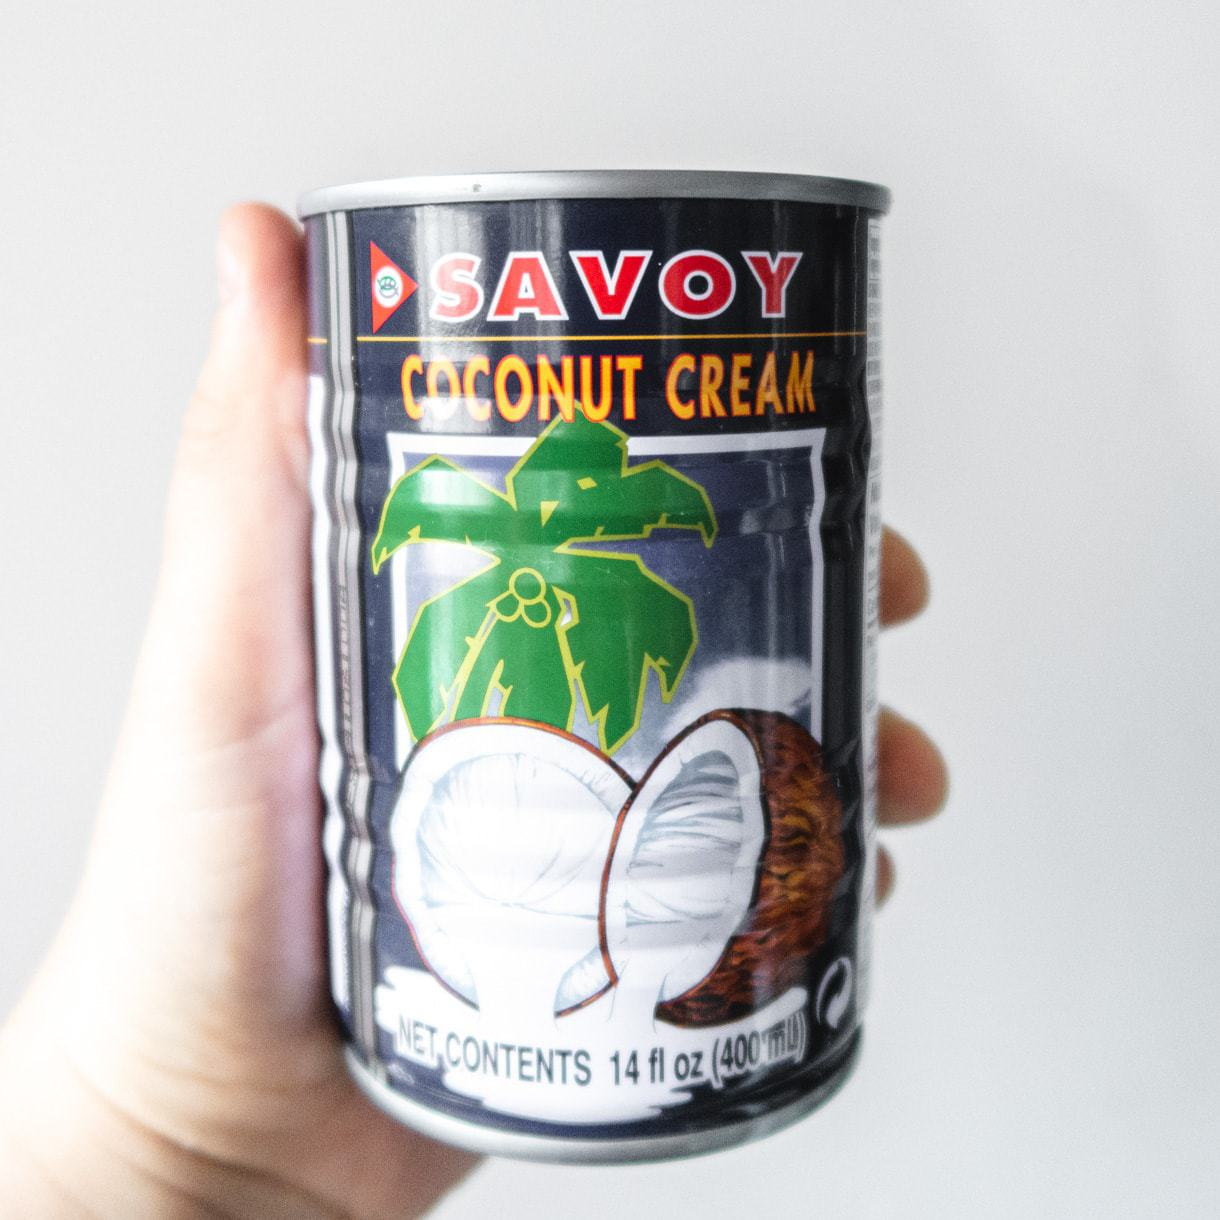 A can of Savoy Brand Coconut cream